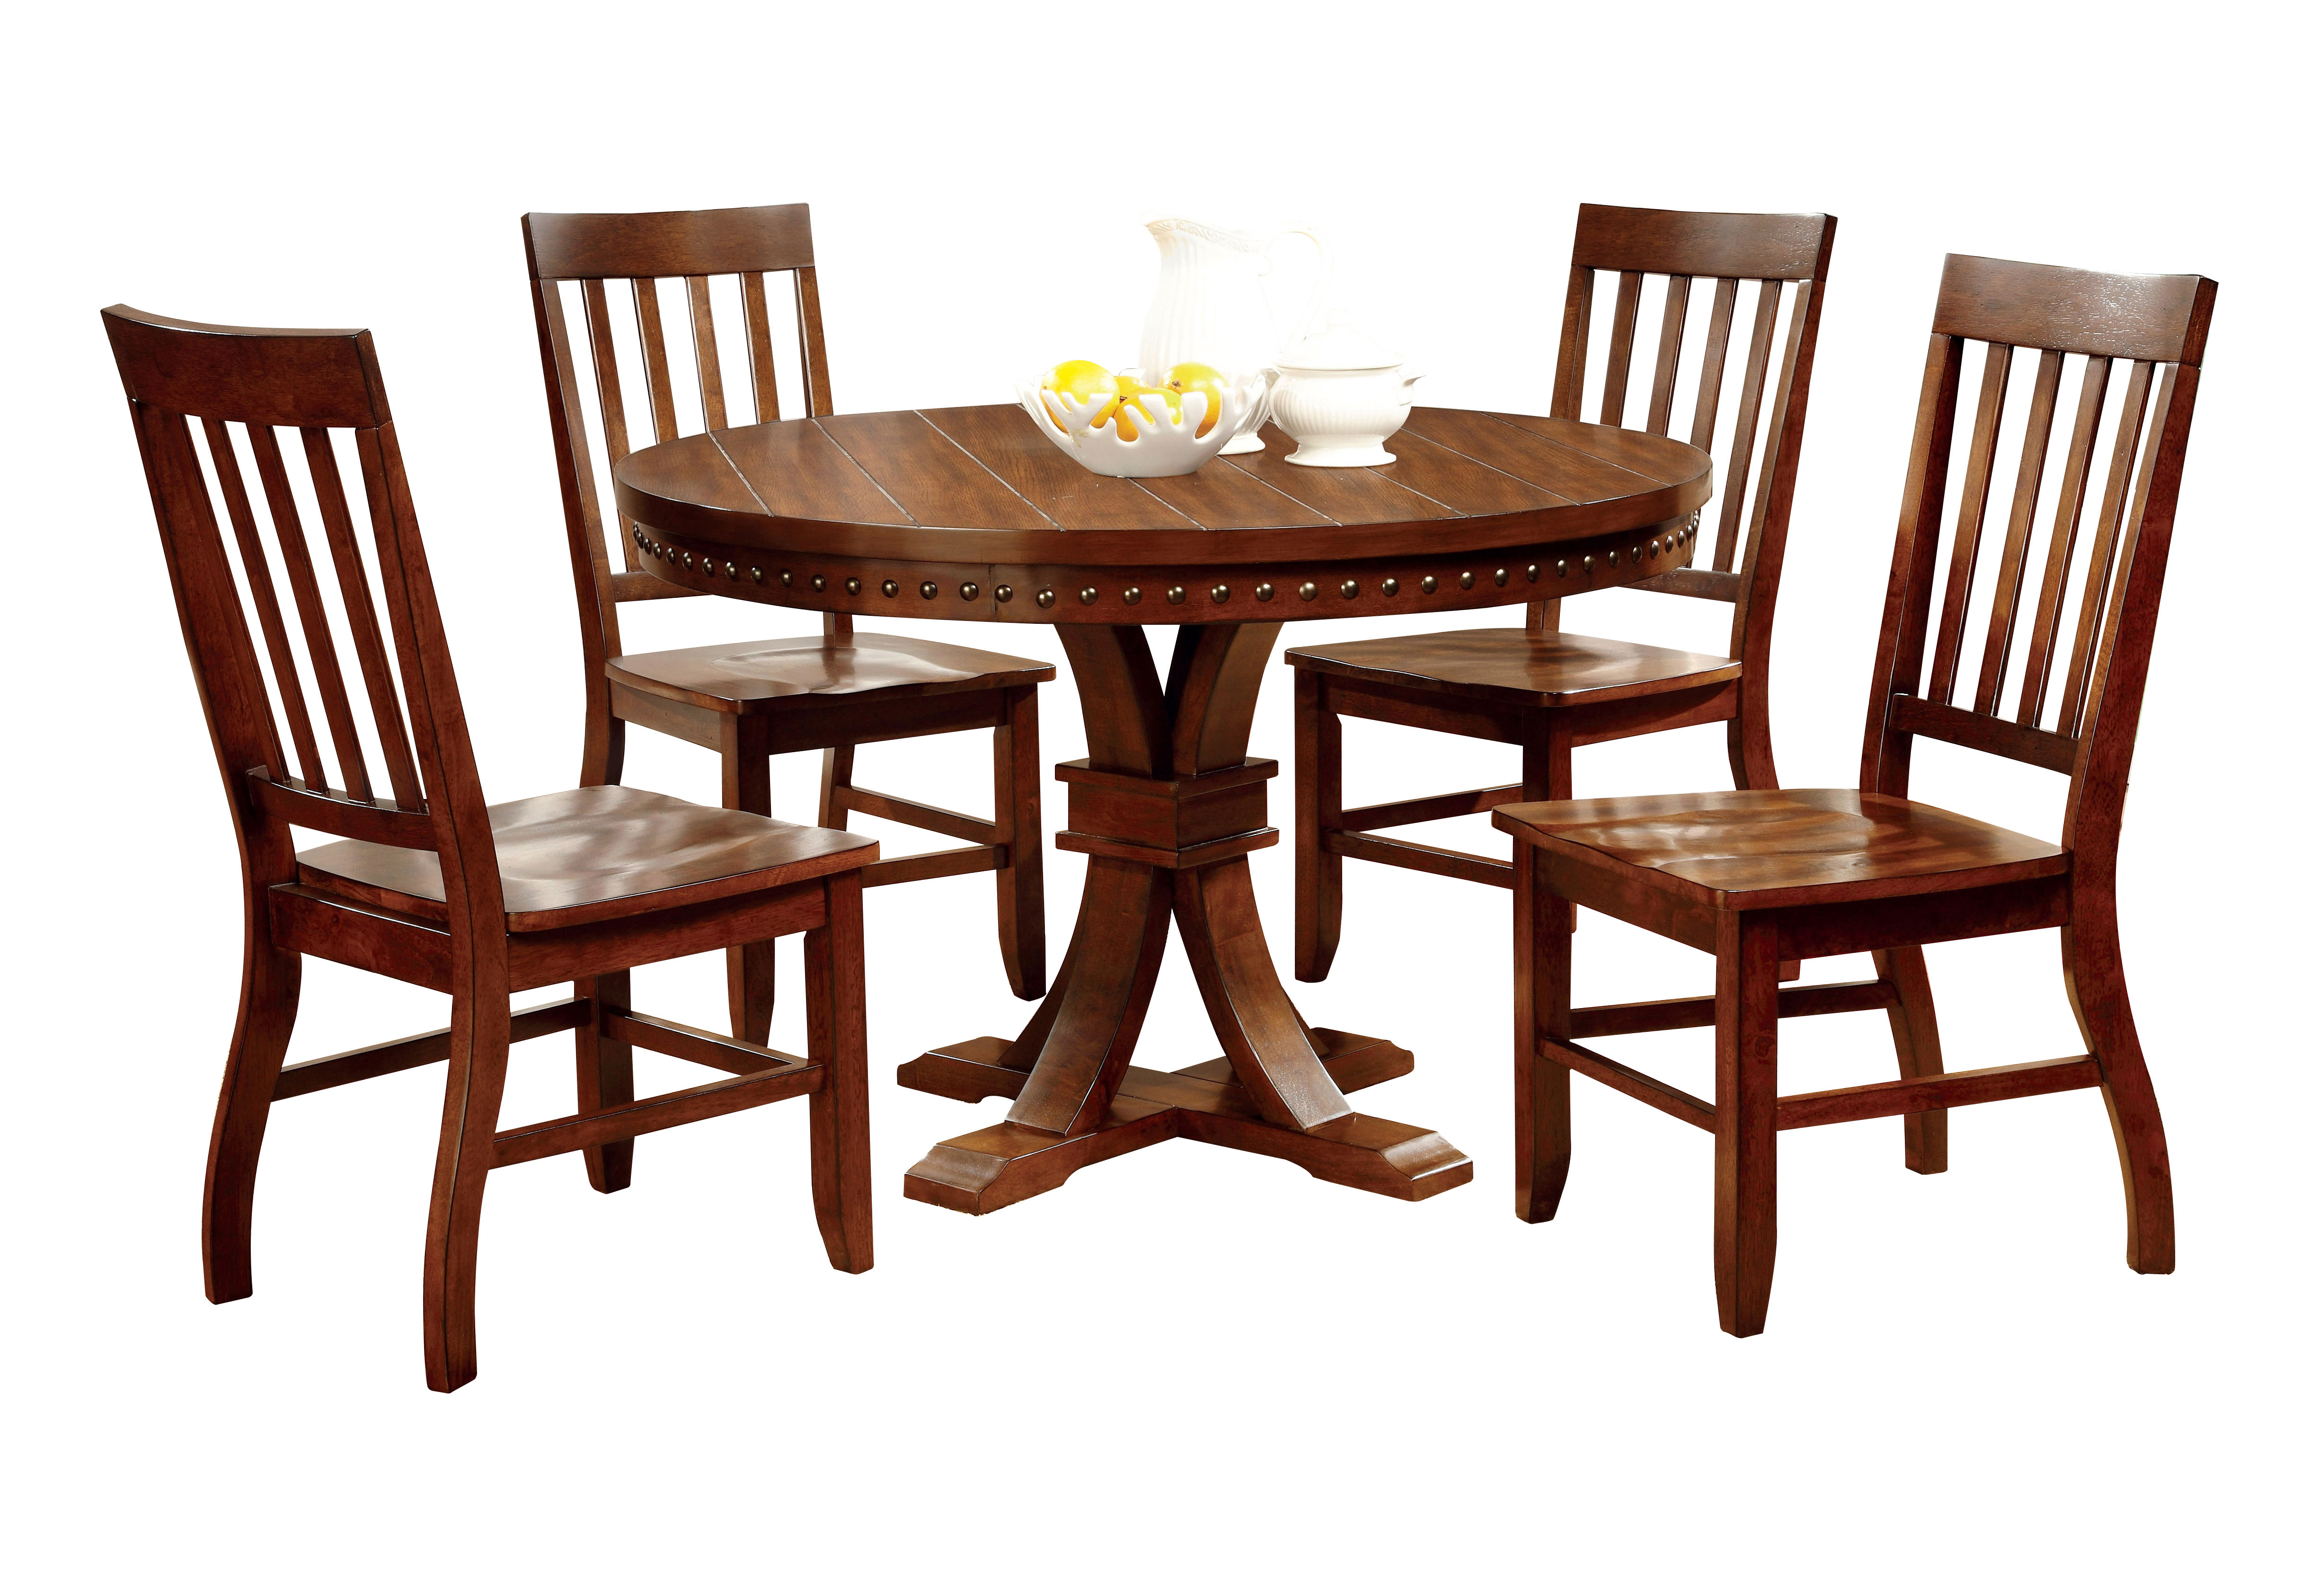 Jared 5 Piece Dining Set Within Newest Jarrod 5 Piece Dining Sets (Image 3 of 20)